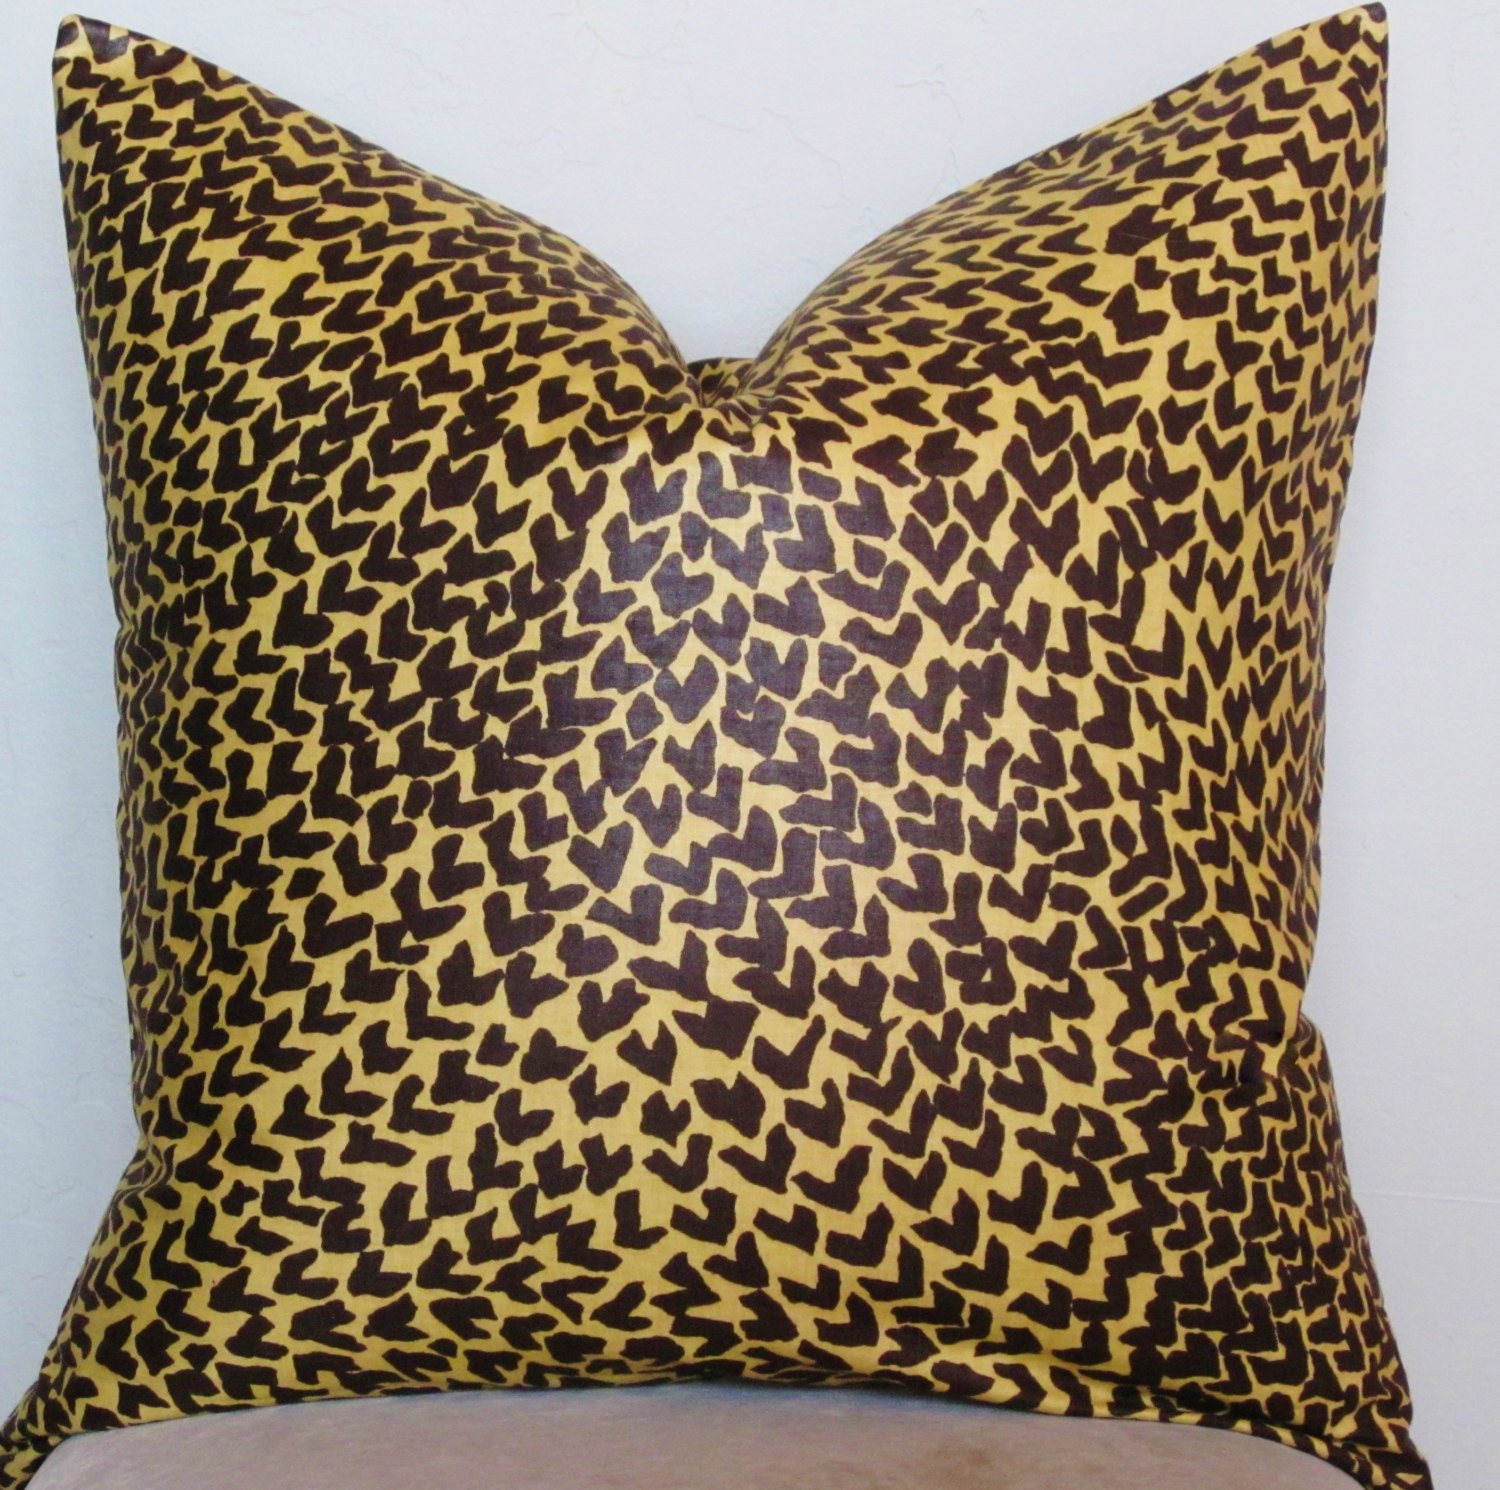 Pillow Cover-Animal Print Brown and Gold by SewWhatAlley on Etsy